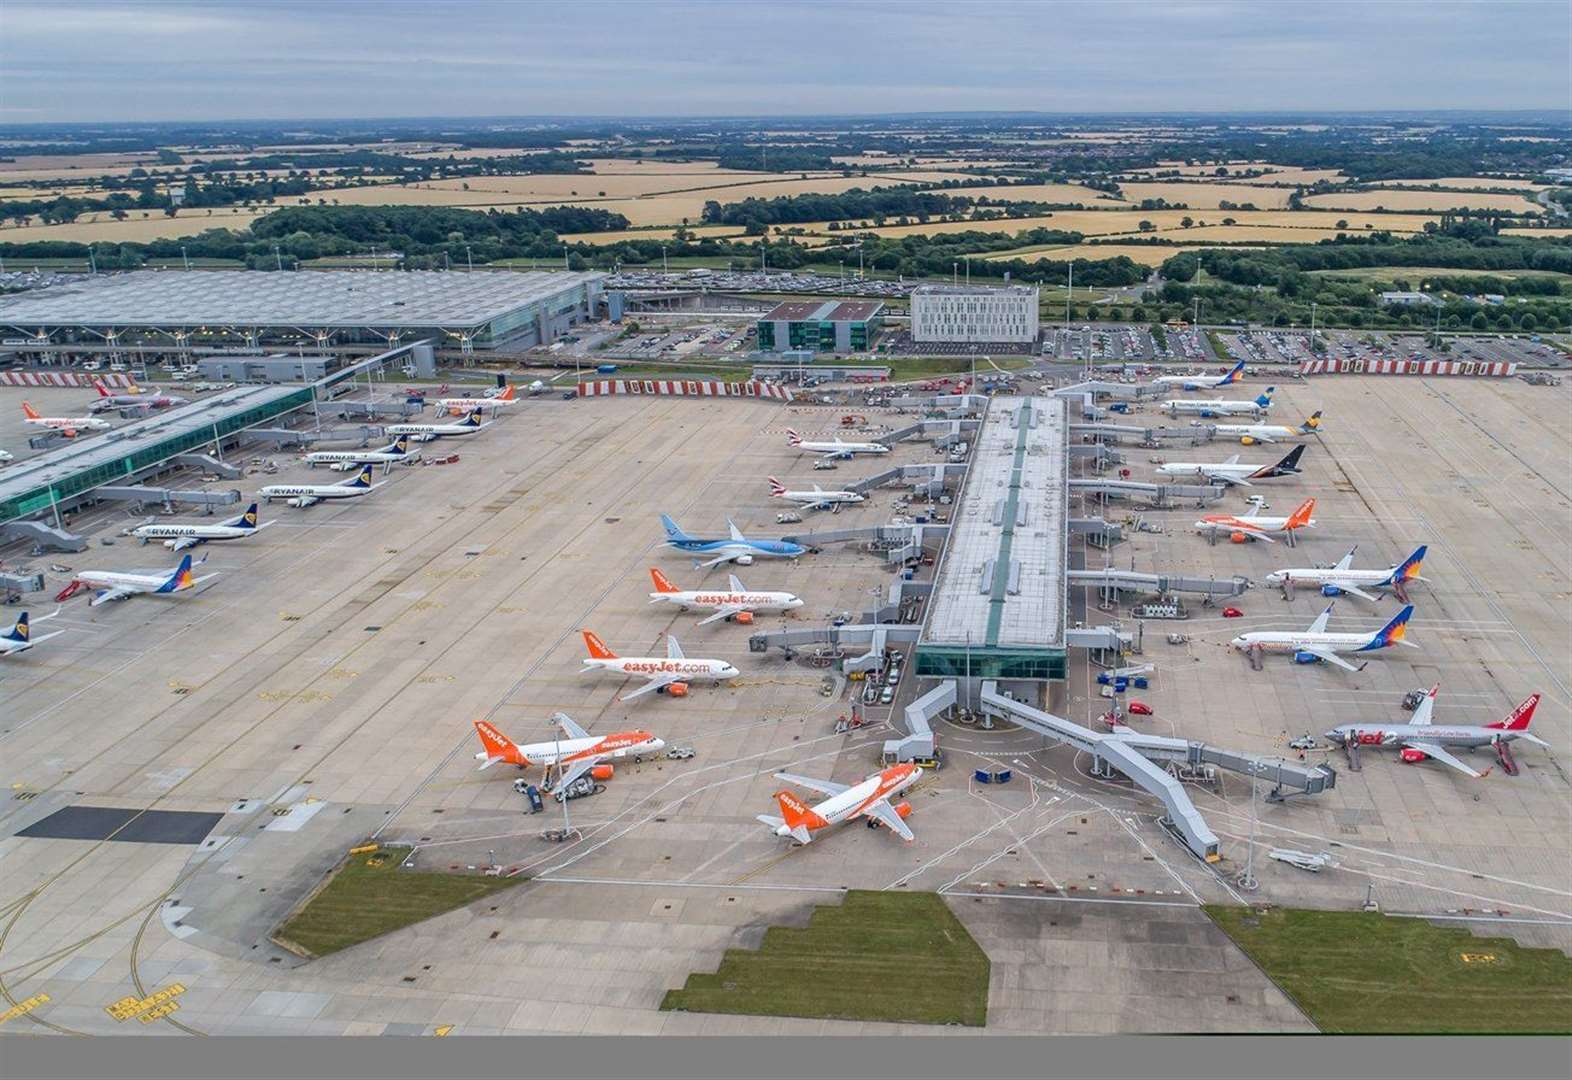 New court battle ahead as council defies legal advice on Stansted Airport?